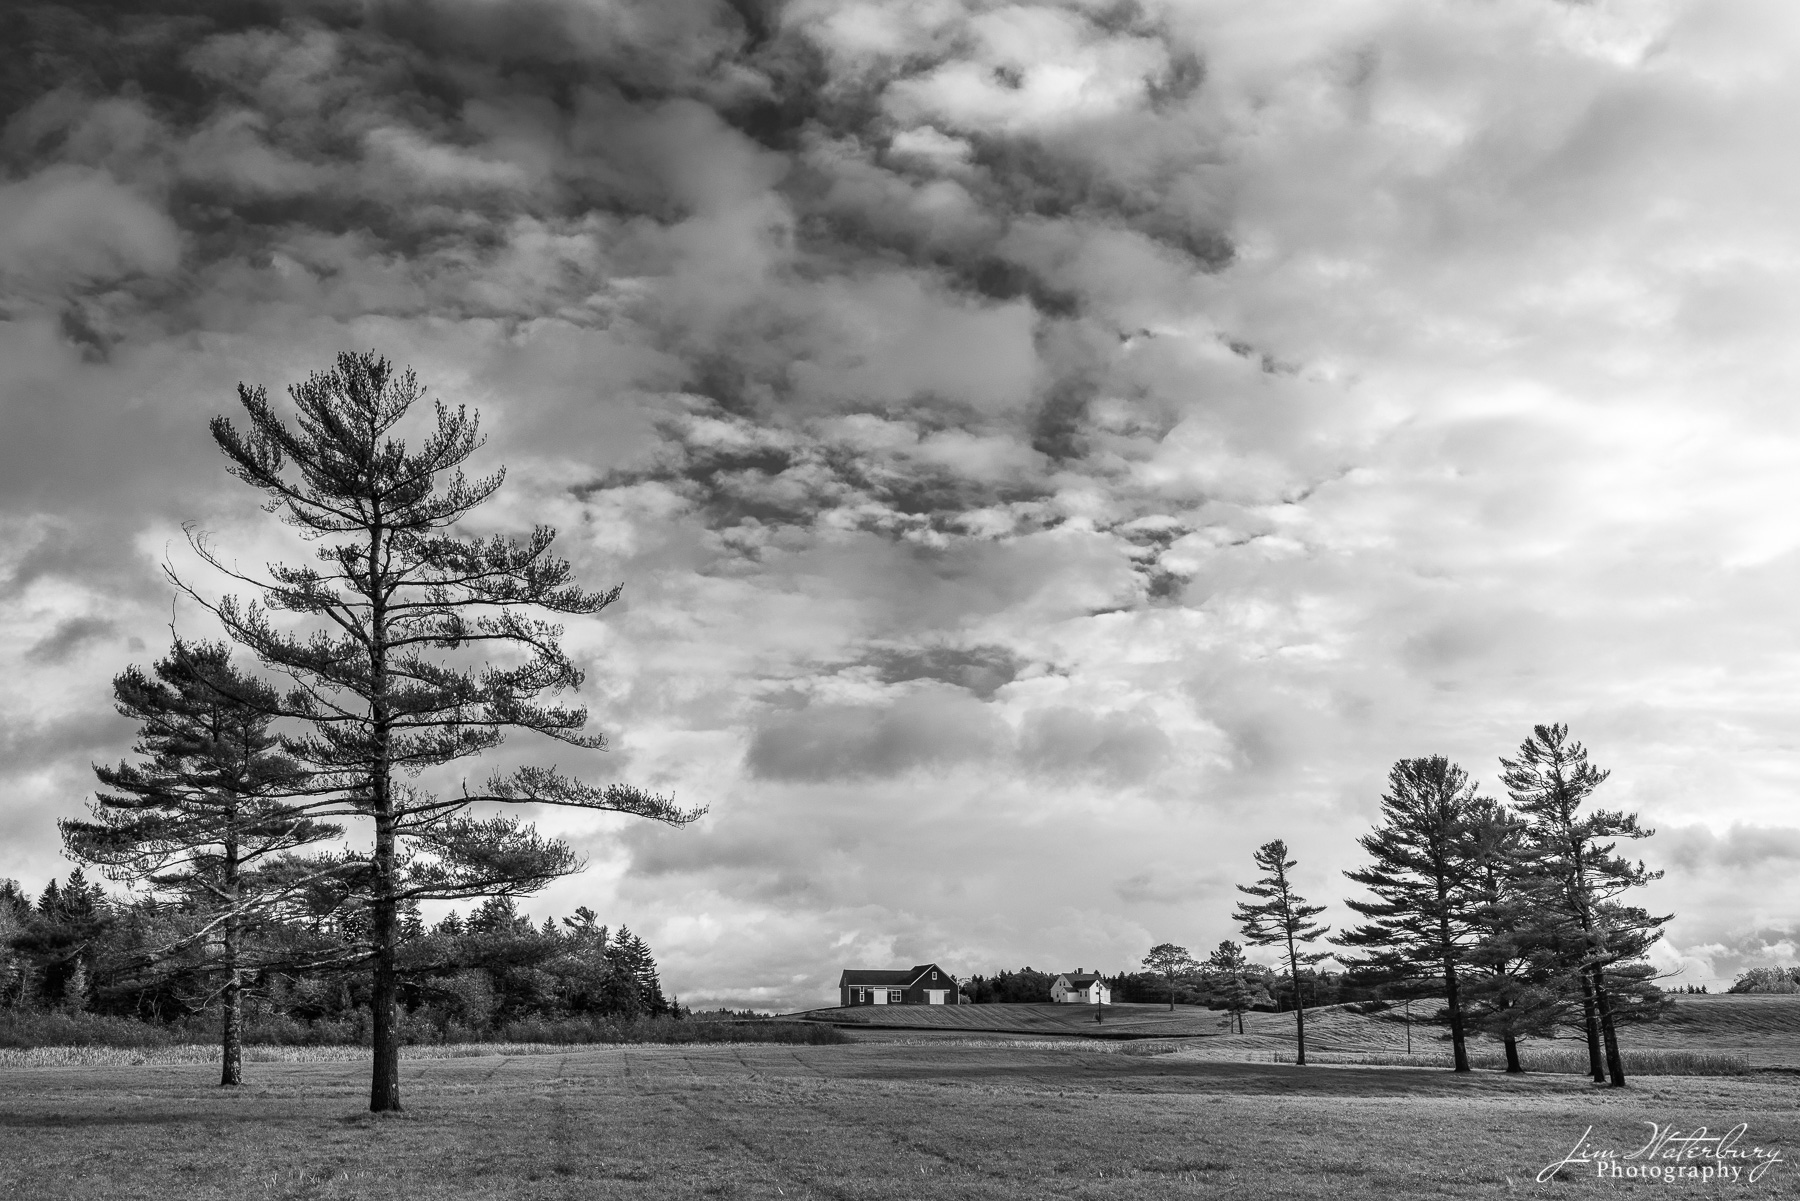 Black & white image of a classic Mine house framed by pines under a stormy sky, near Cushing, Maine